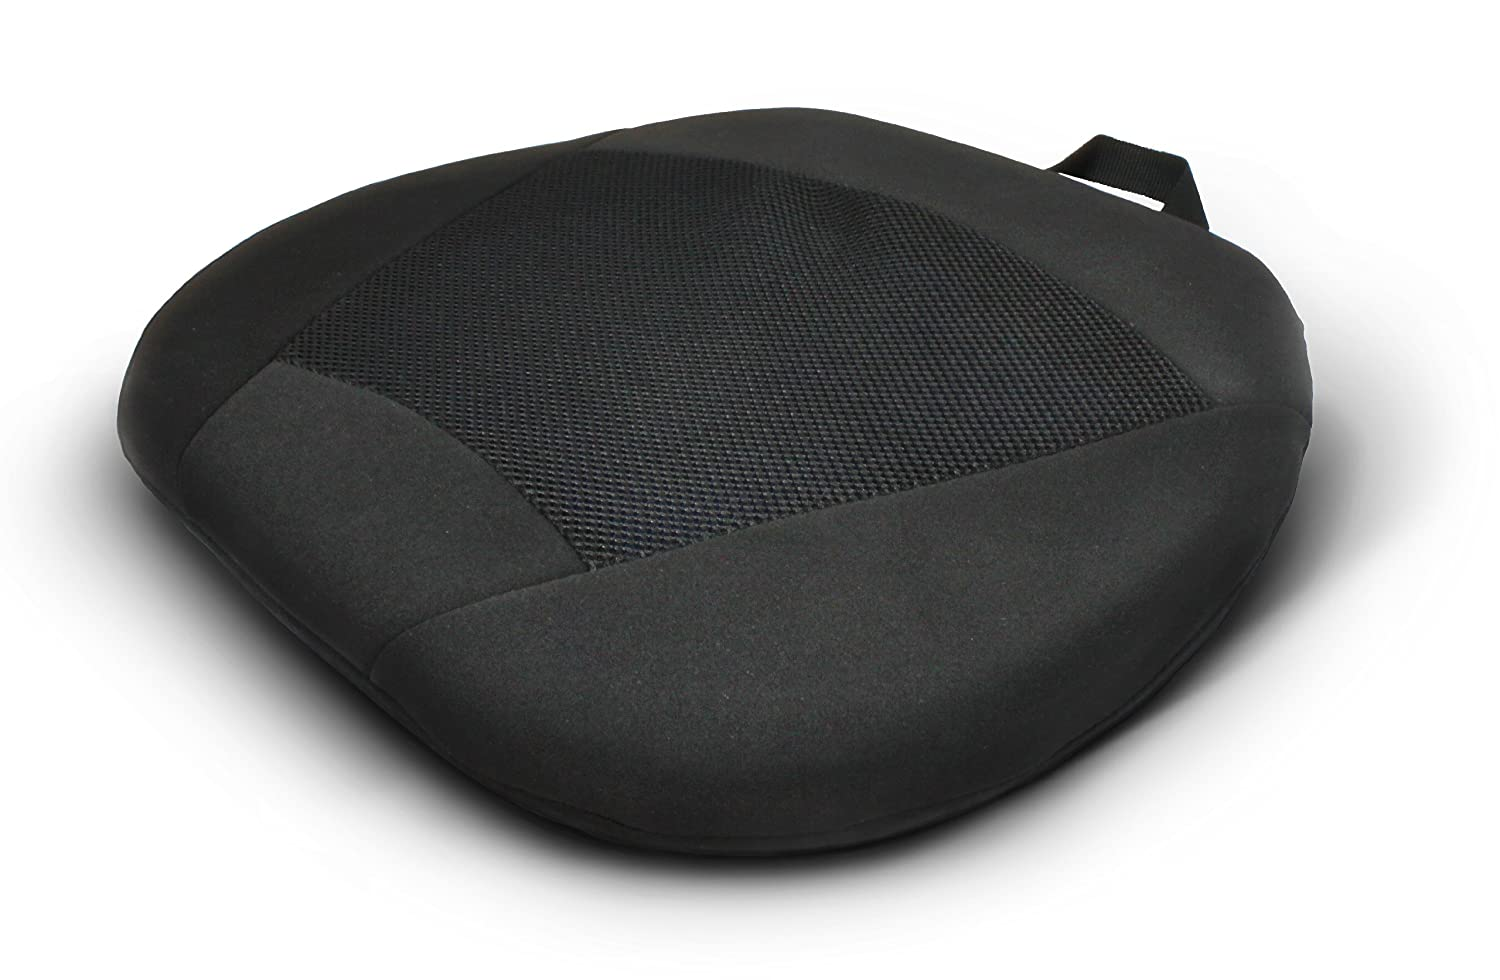 kenley orthopedic gel cushion for drivers car seat office. Black Bedroom Furniture Sets. Home Design Ideas